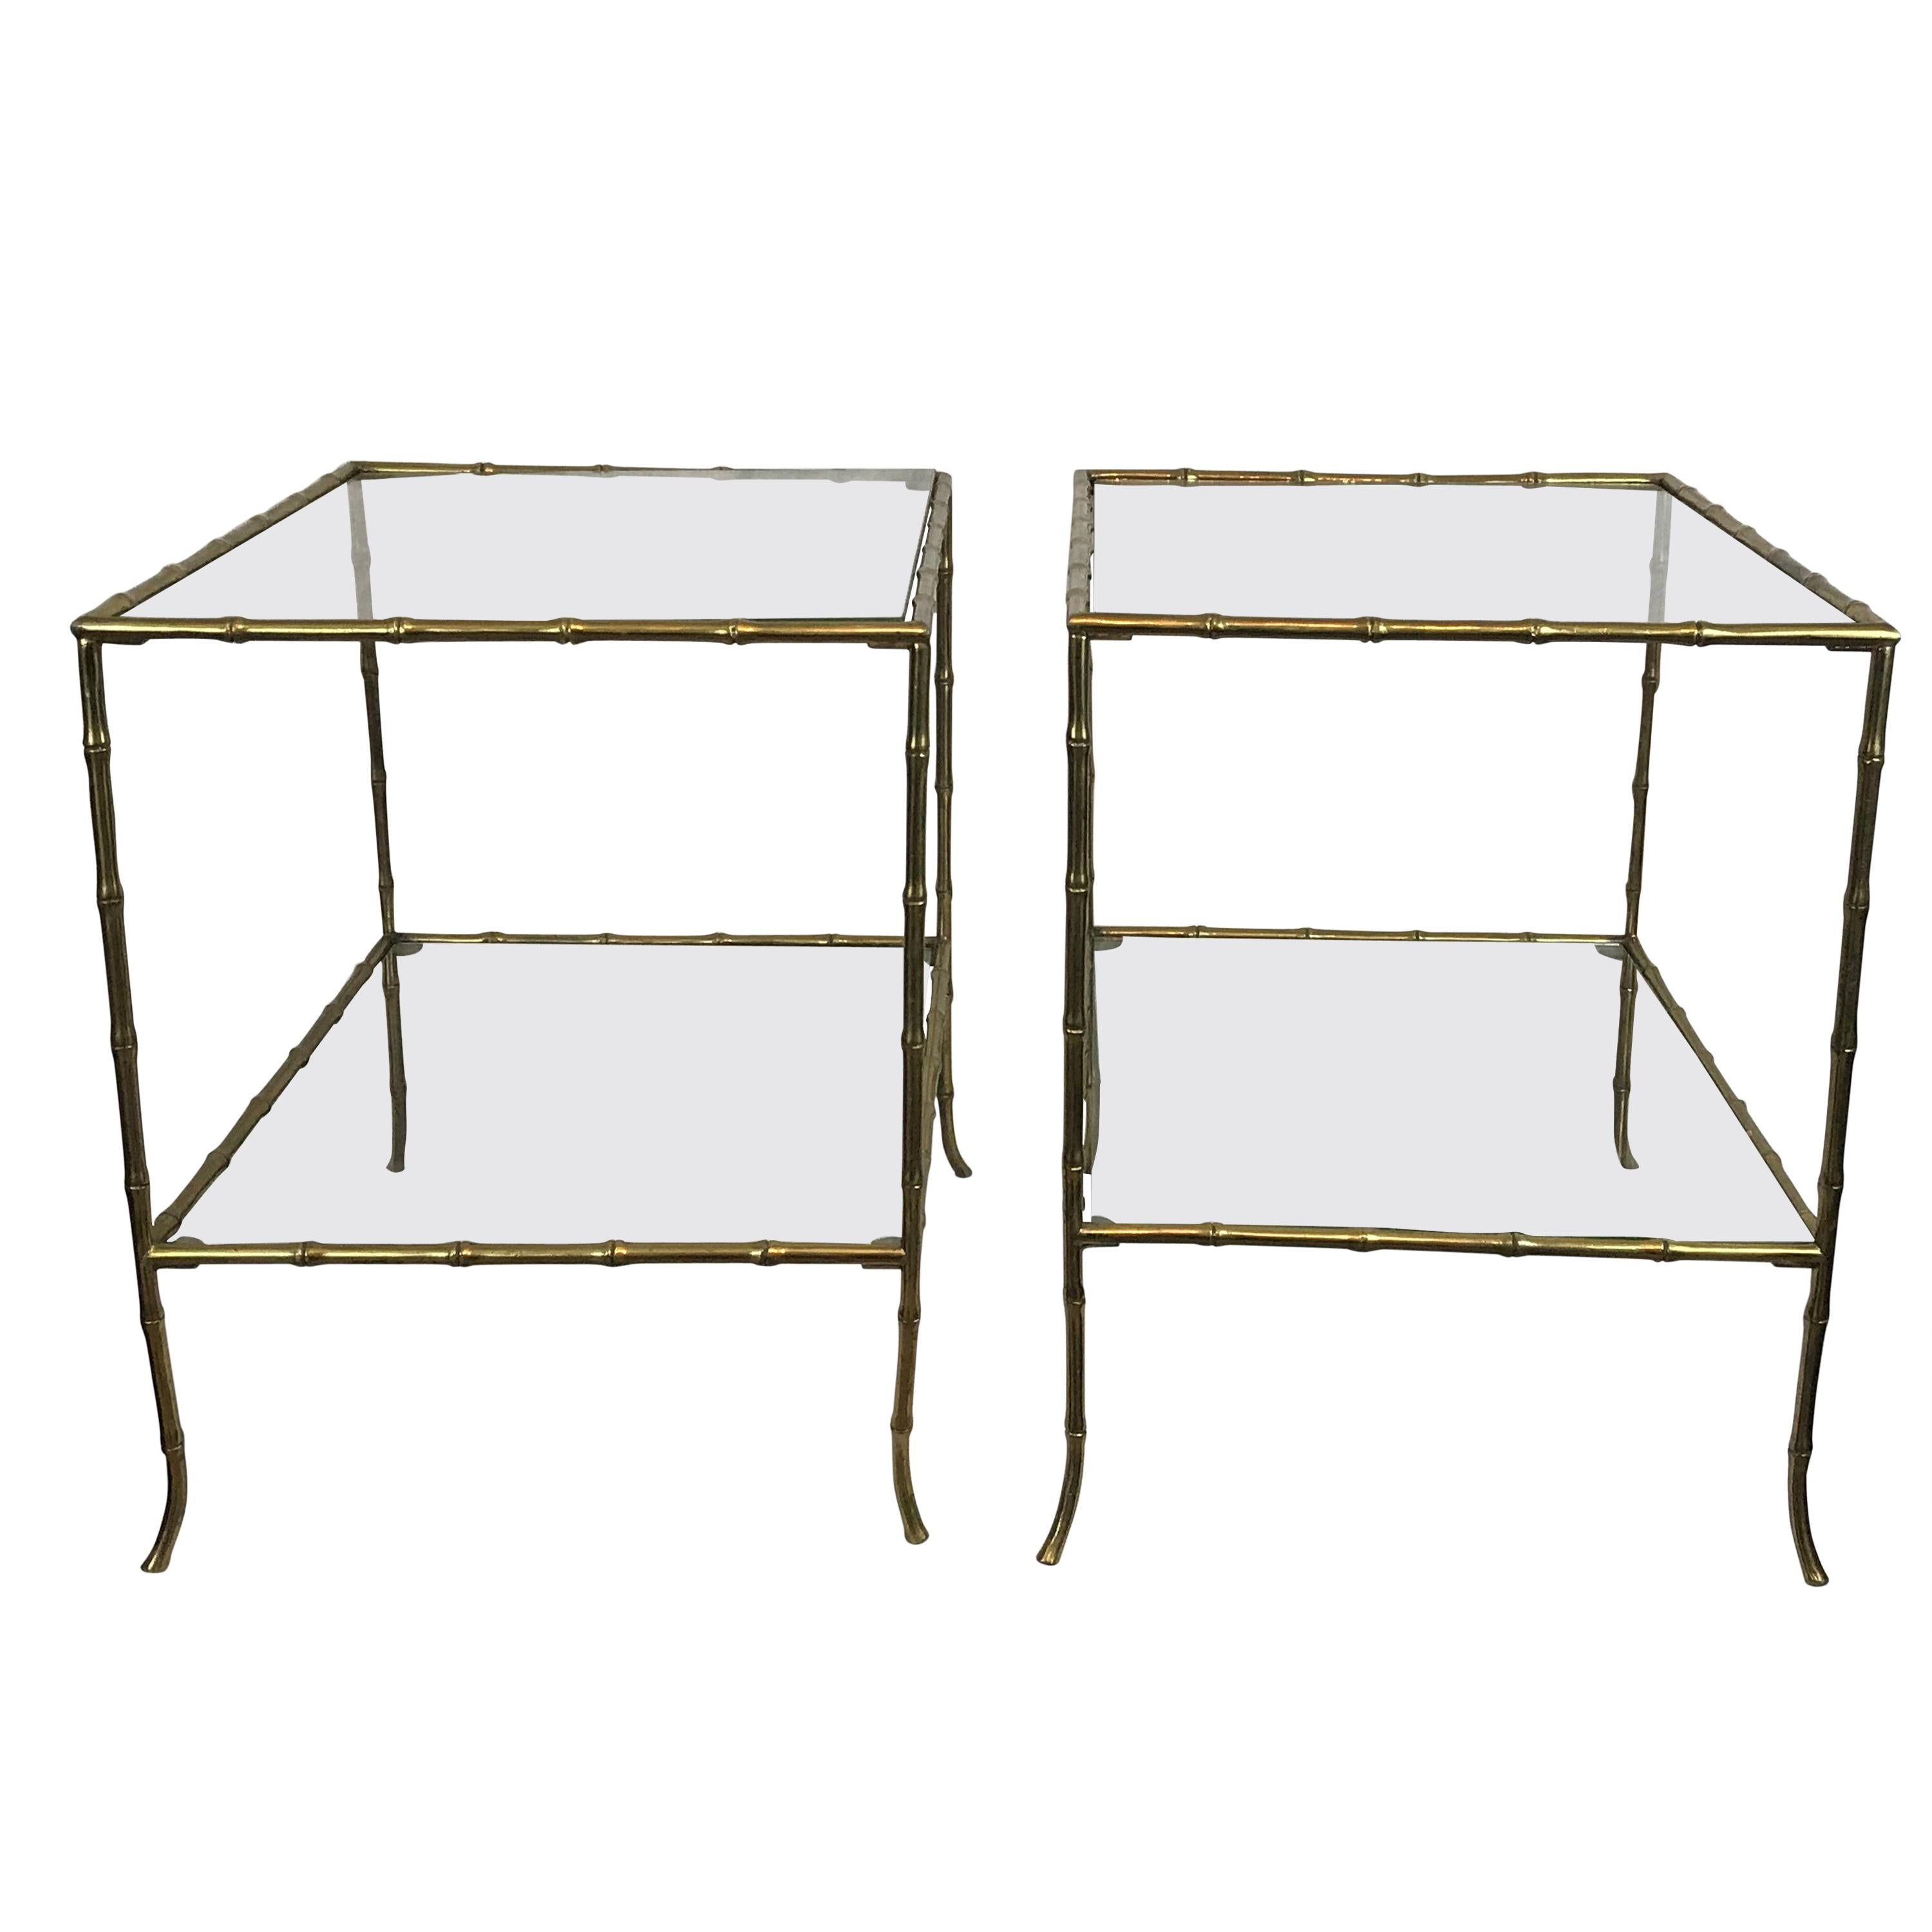 Pair Of Side Tables, Gold Metal Faux Bamboo Frames With Glass, Mid 20th  Century